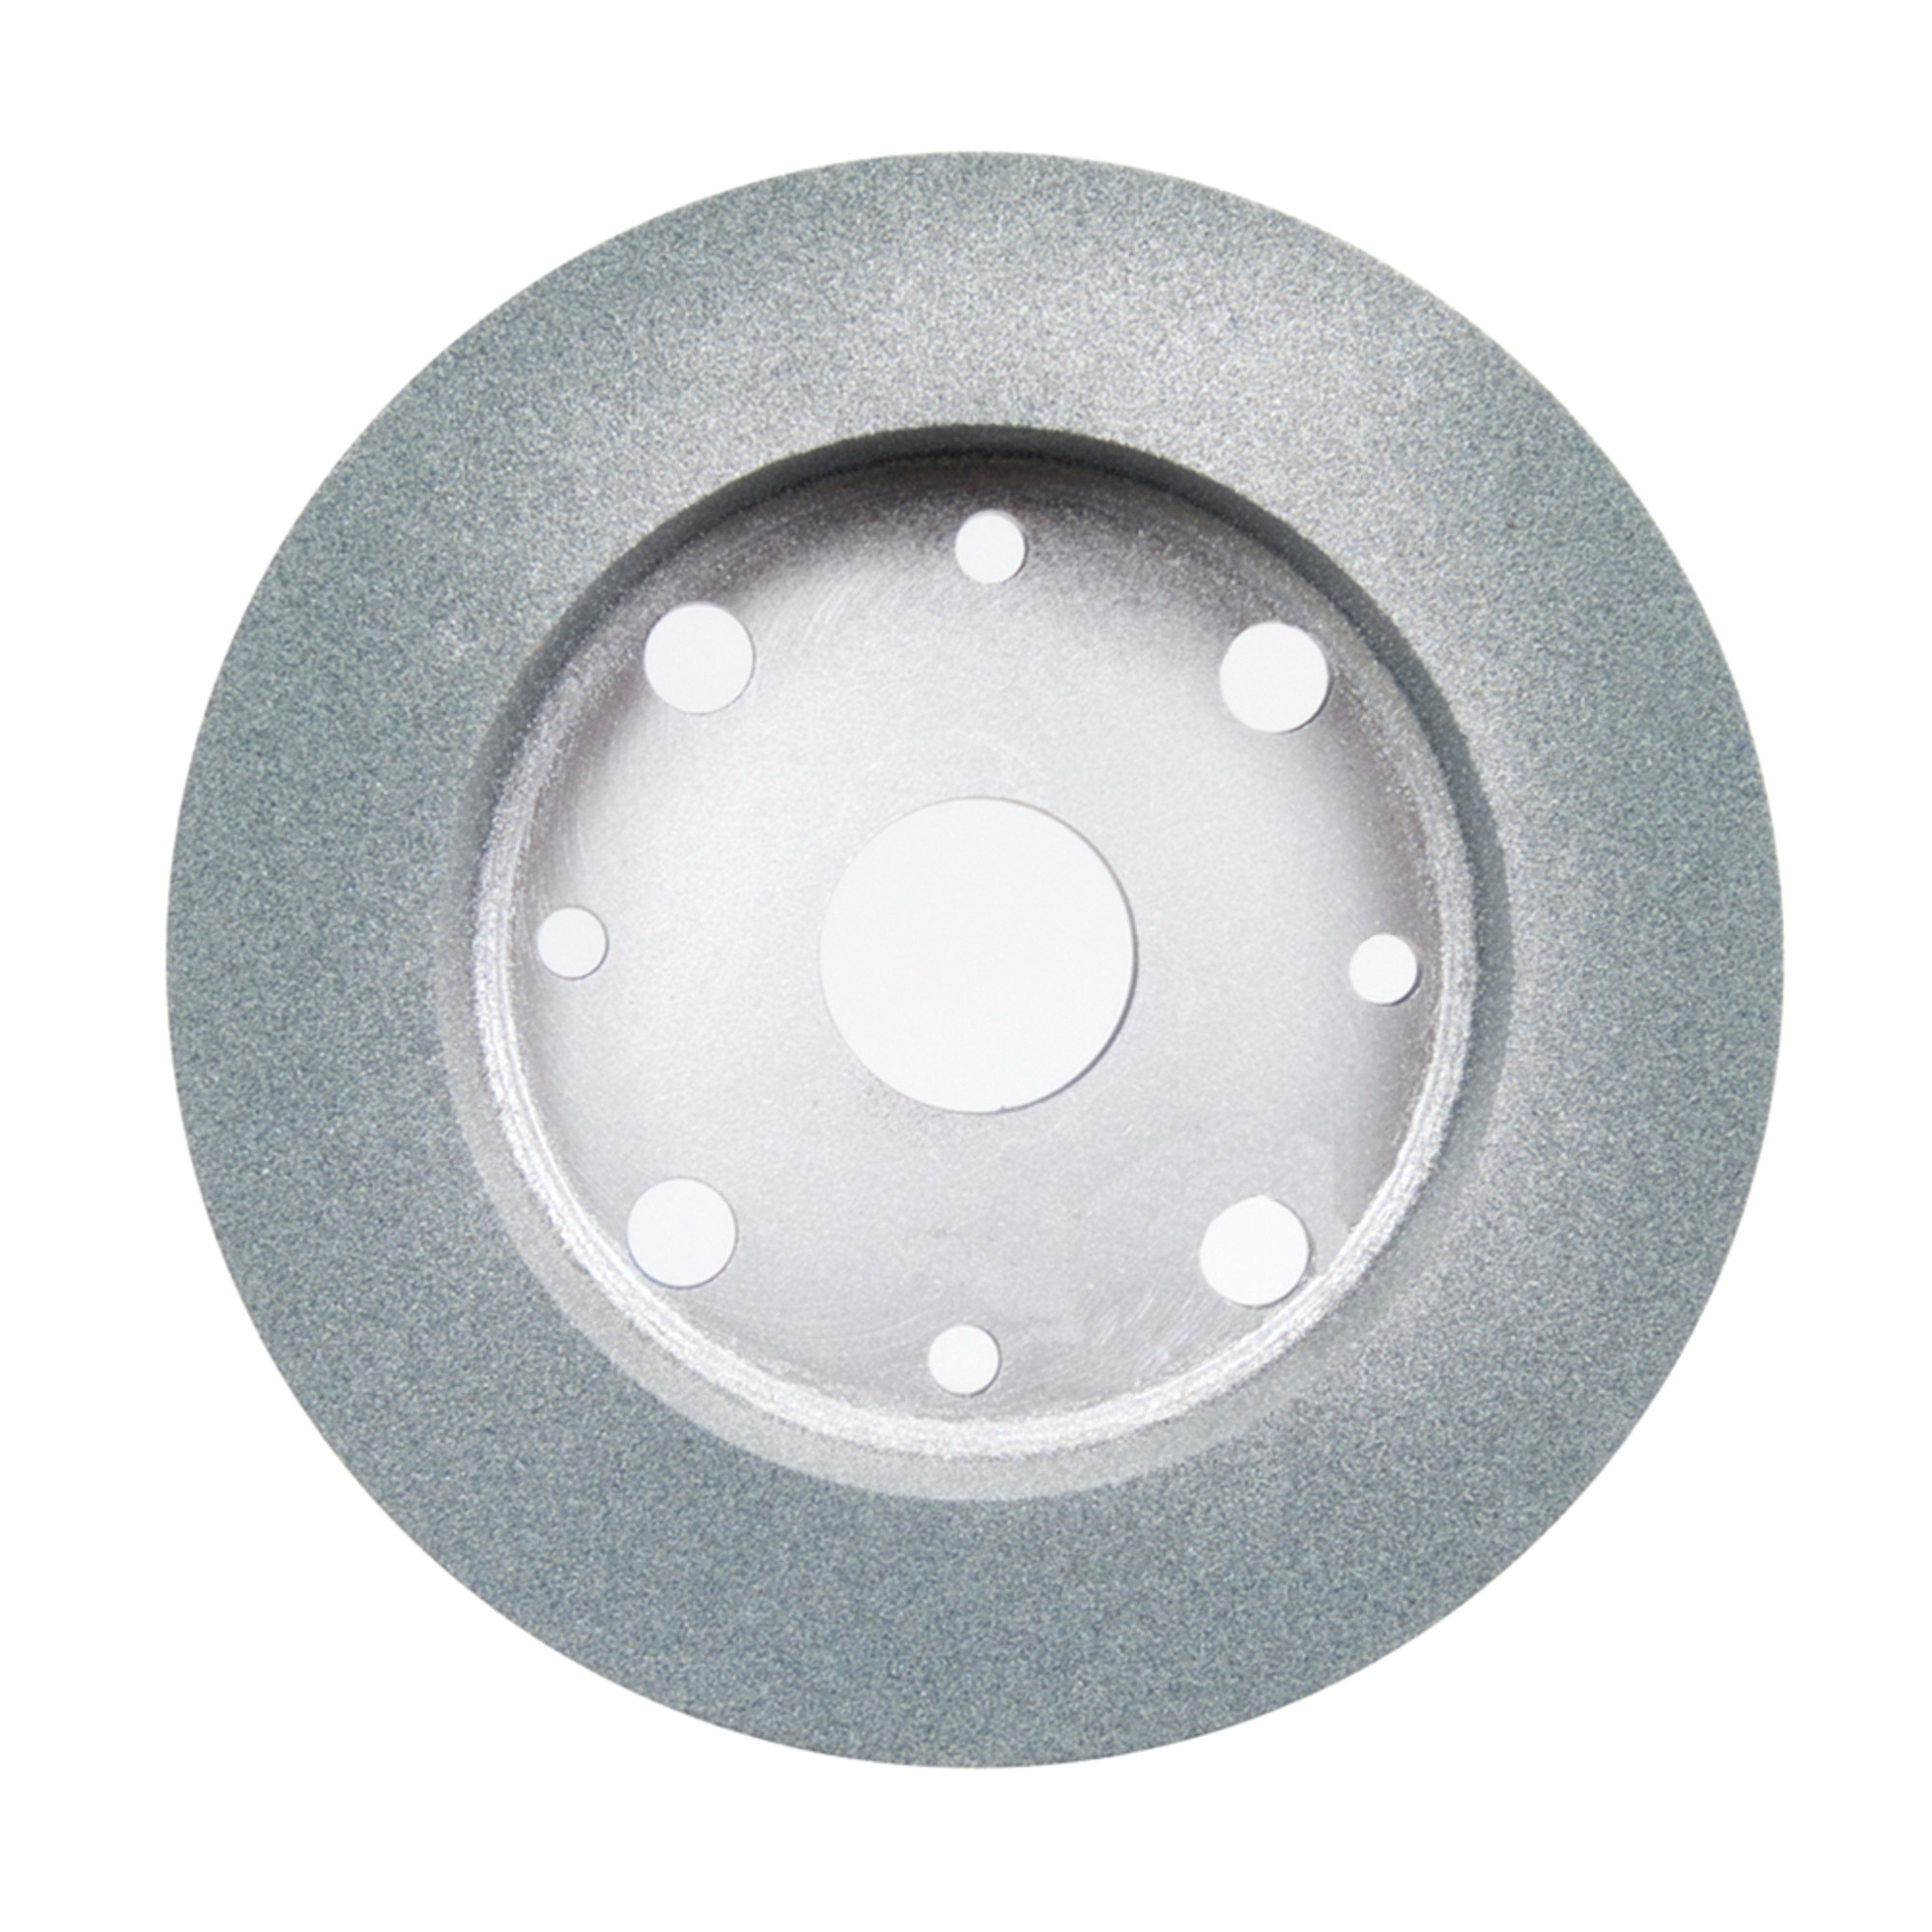 Norton® 66252838324 39C Cylinder Toolroom Wheel, 6 in Dia x 1 in THK, 4 in Center Hole, 60 Grit, Silicon Carbide Abrasive